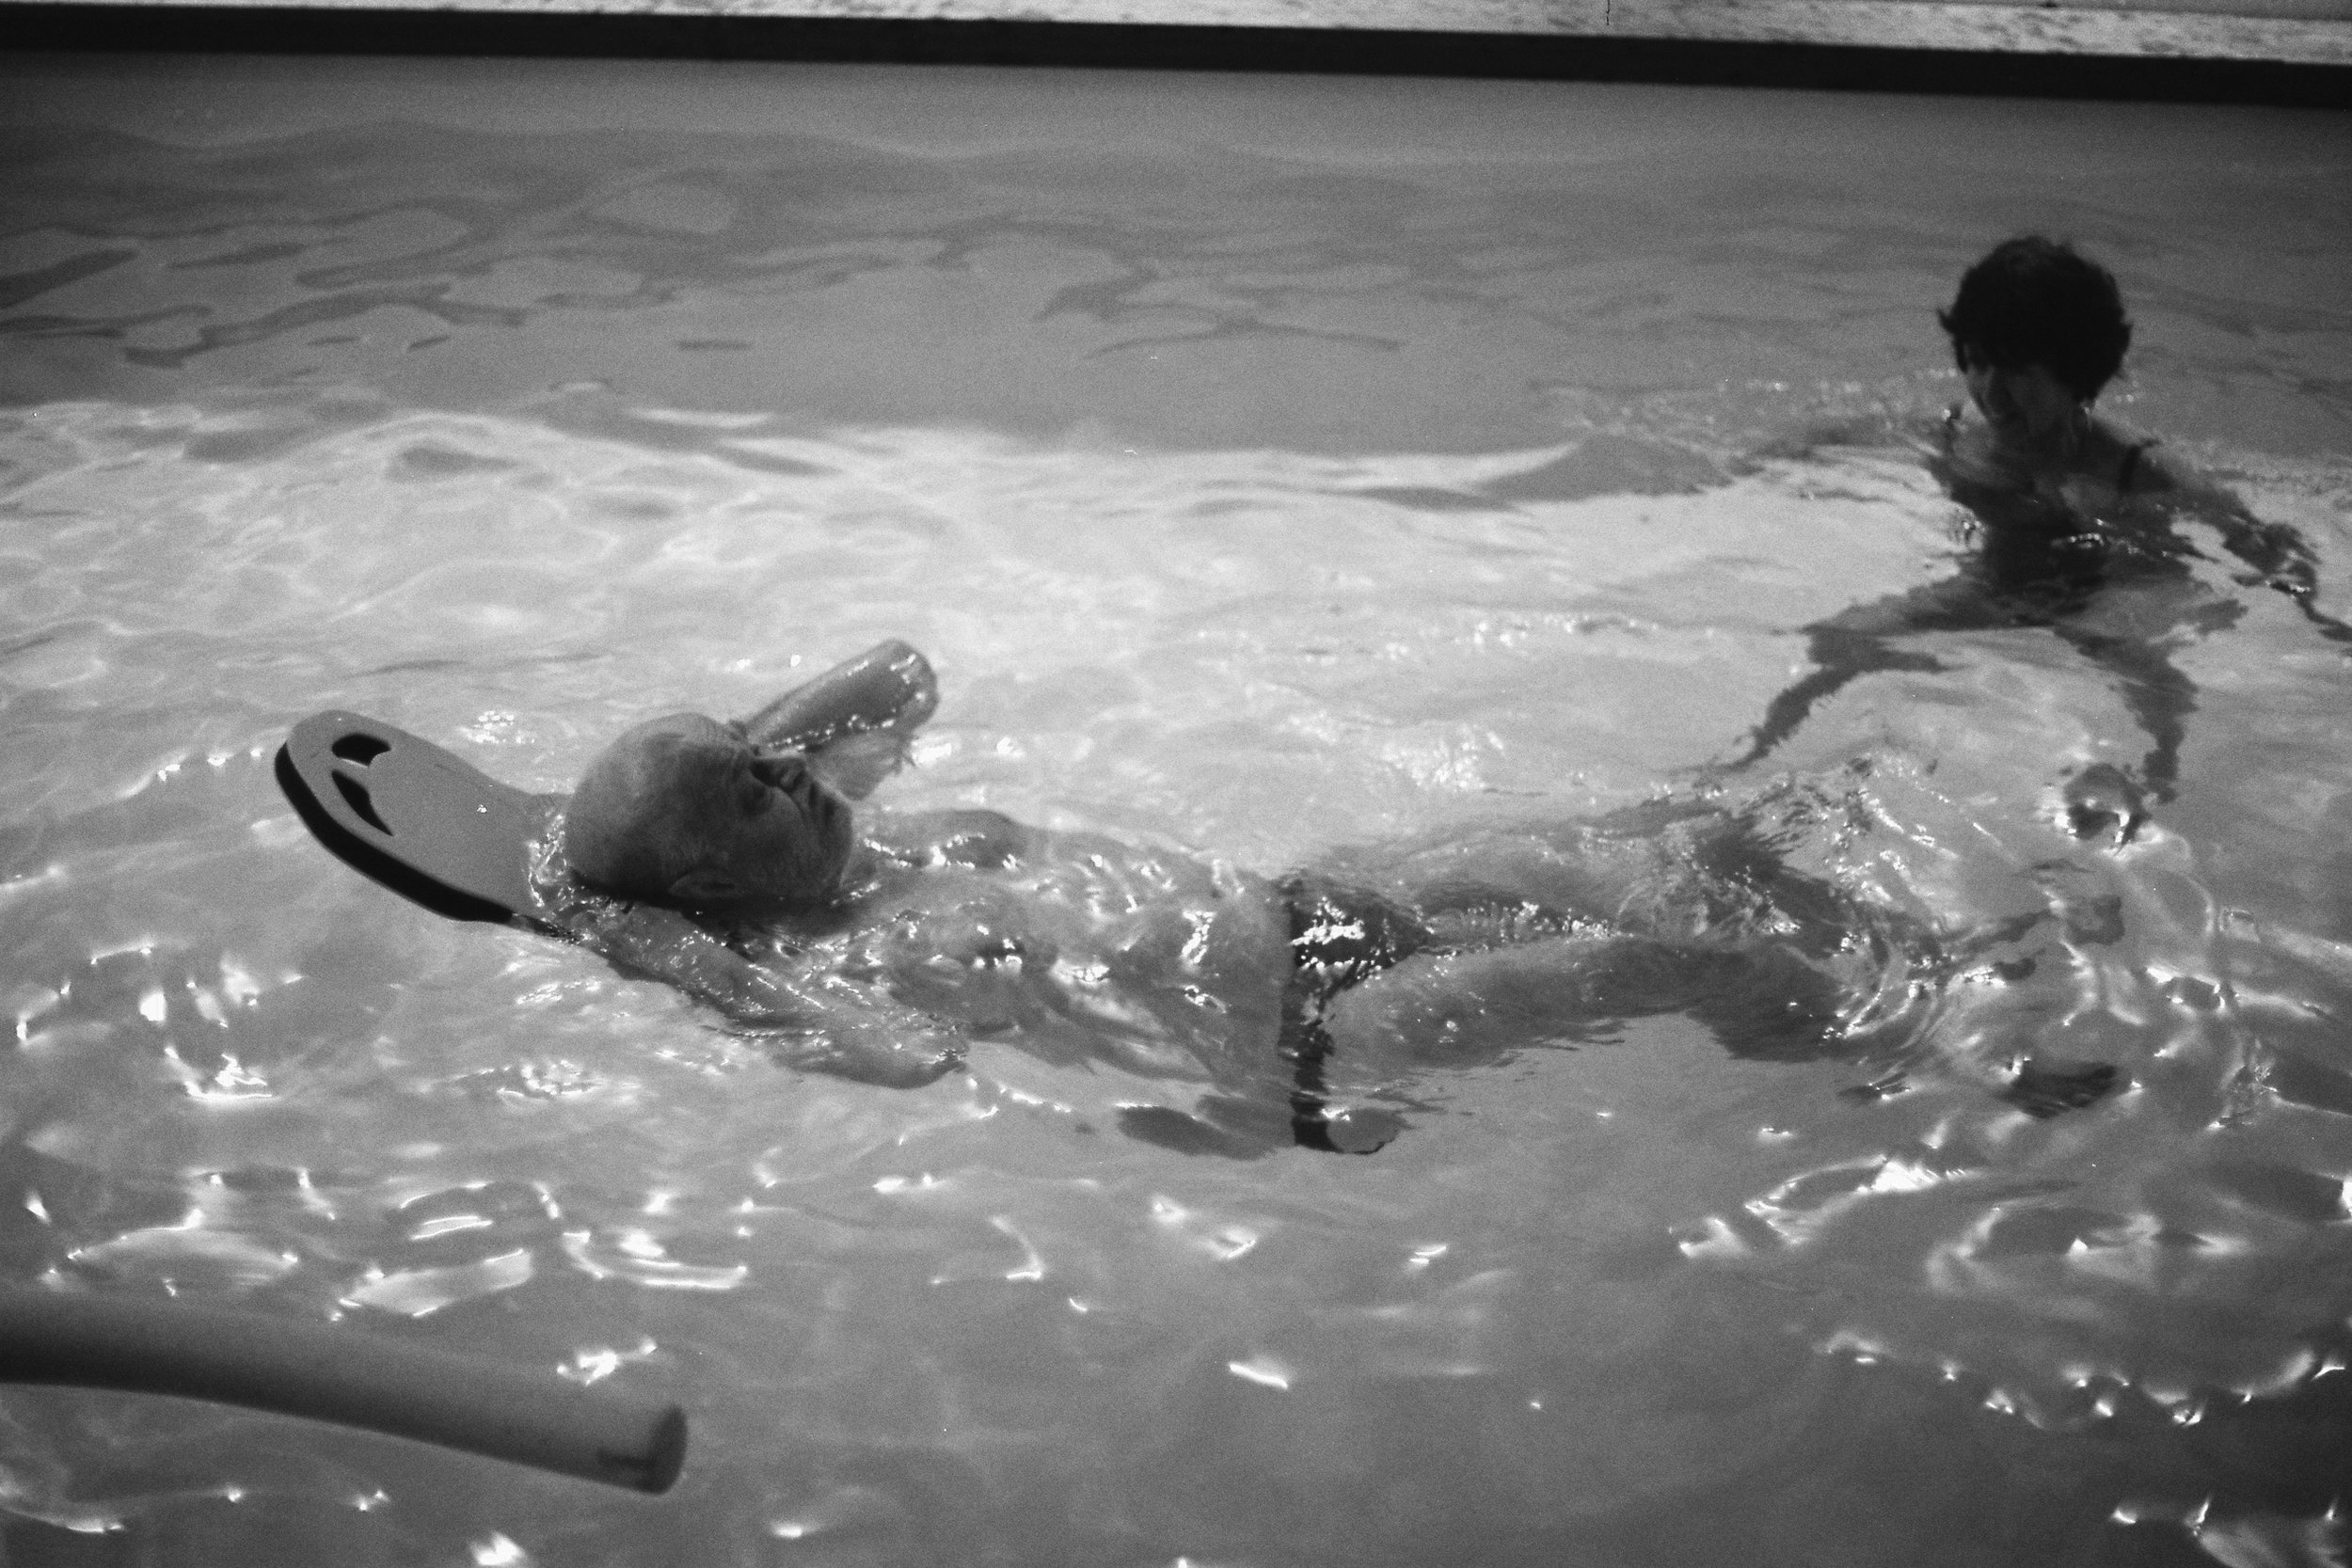 [My parents in our swimming pool]